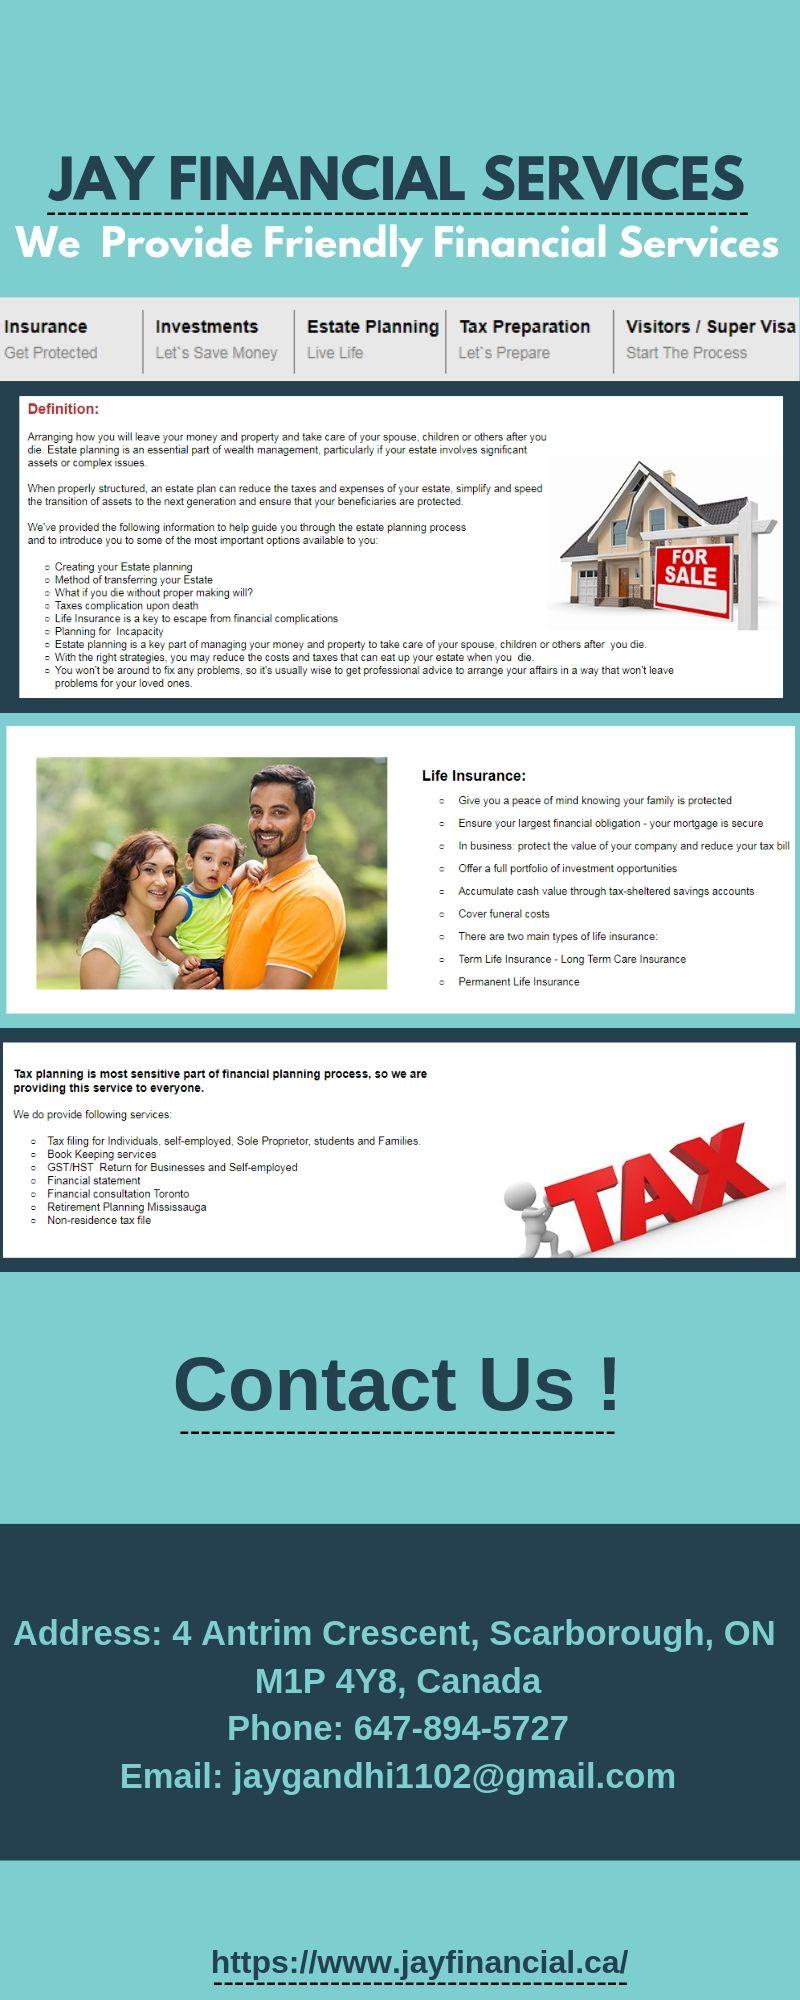 Jay Financial Services Insurance investments, Dental